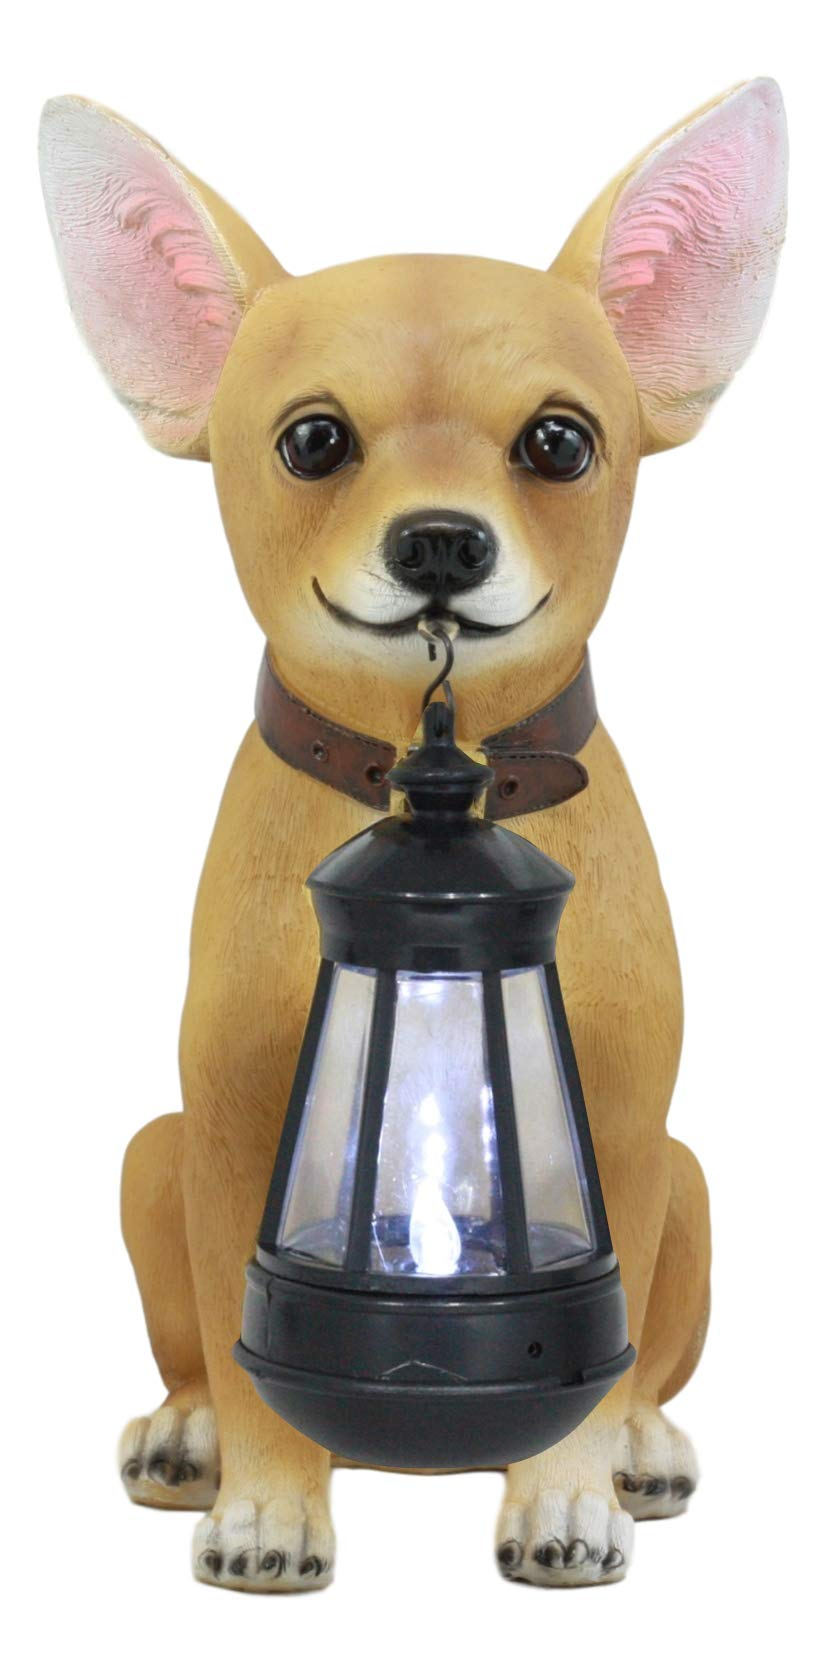 Ebros Picante Mexican Chihuahua Dog Decor Path Lighter Statue 12.5''Tall with Solar LED Light Lantern Lamp This Little Light of Mine